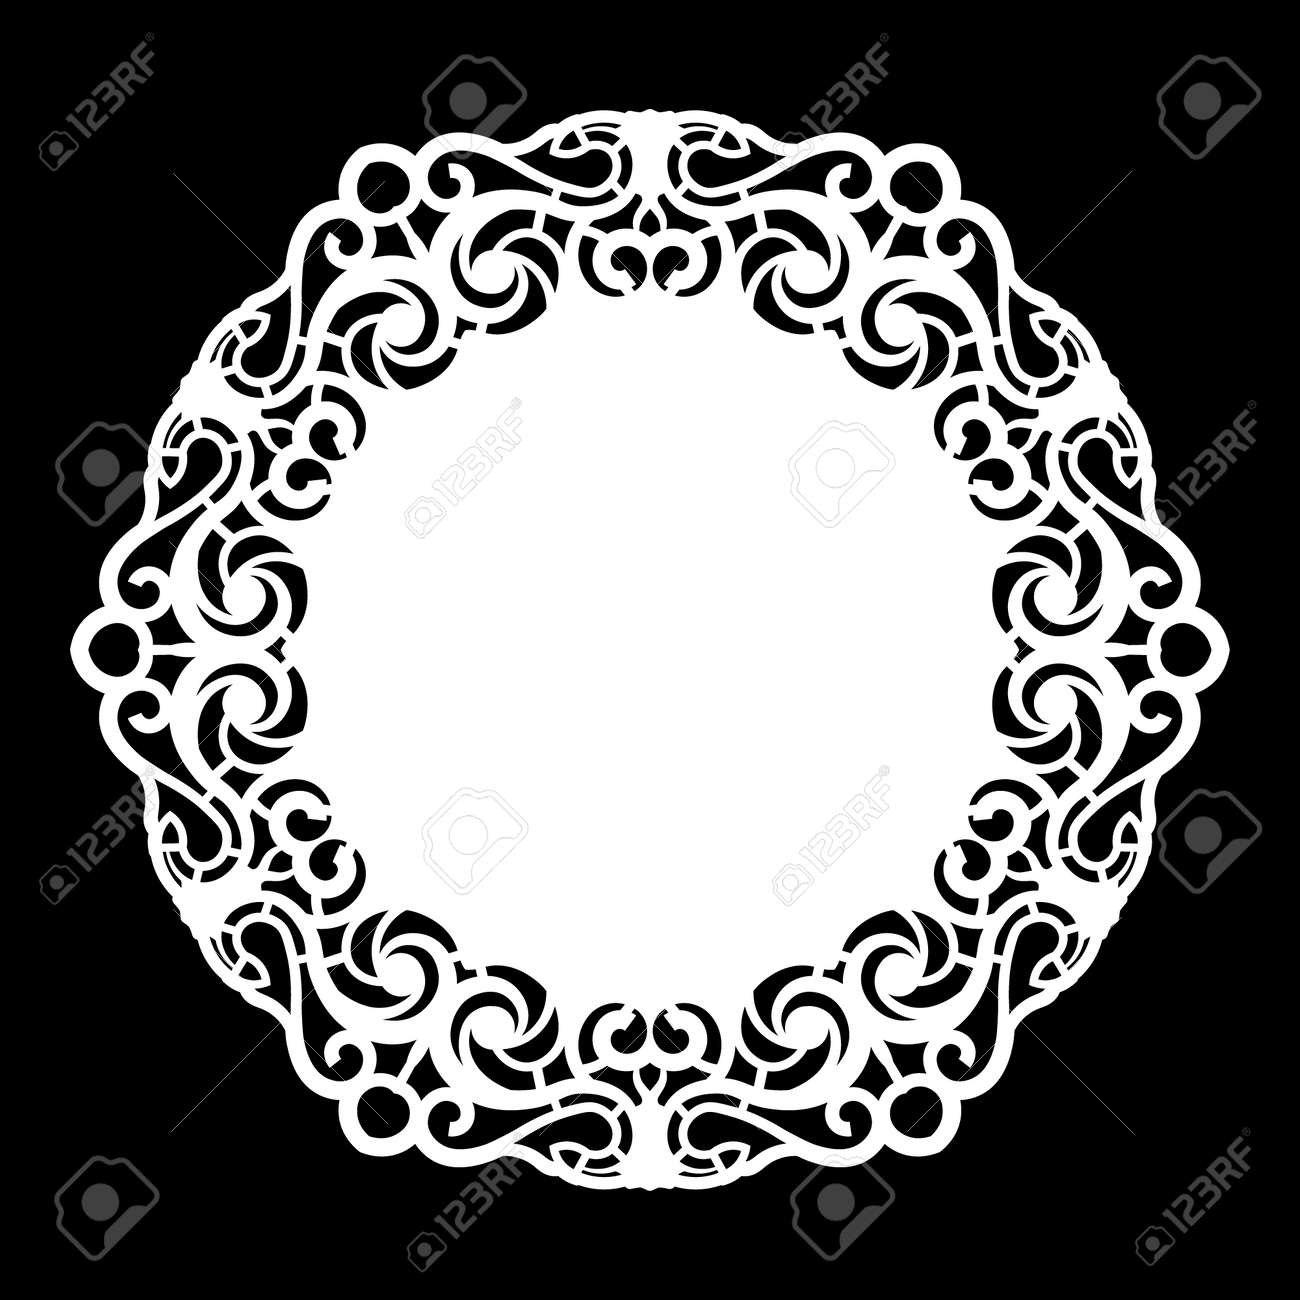 lace round paper doily lacy snowflake greeting element template rh 123rf com vector lace pattern background vector lace pattern free